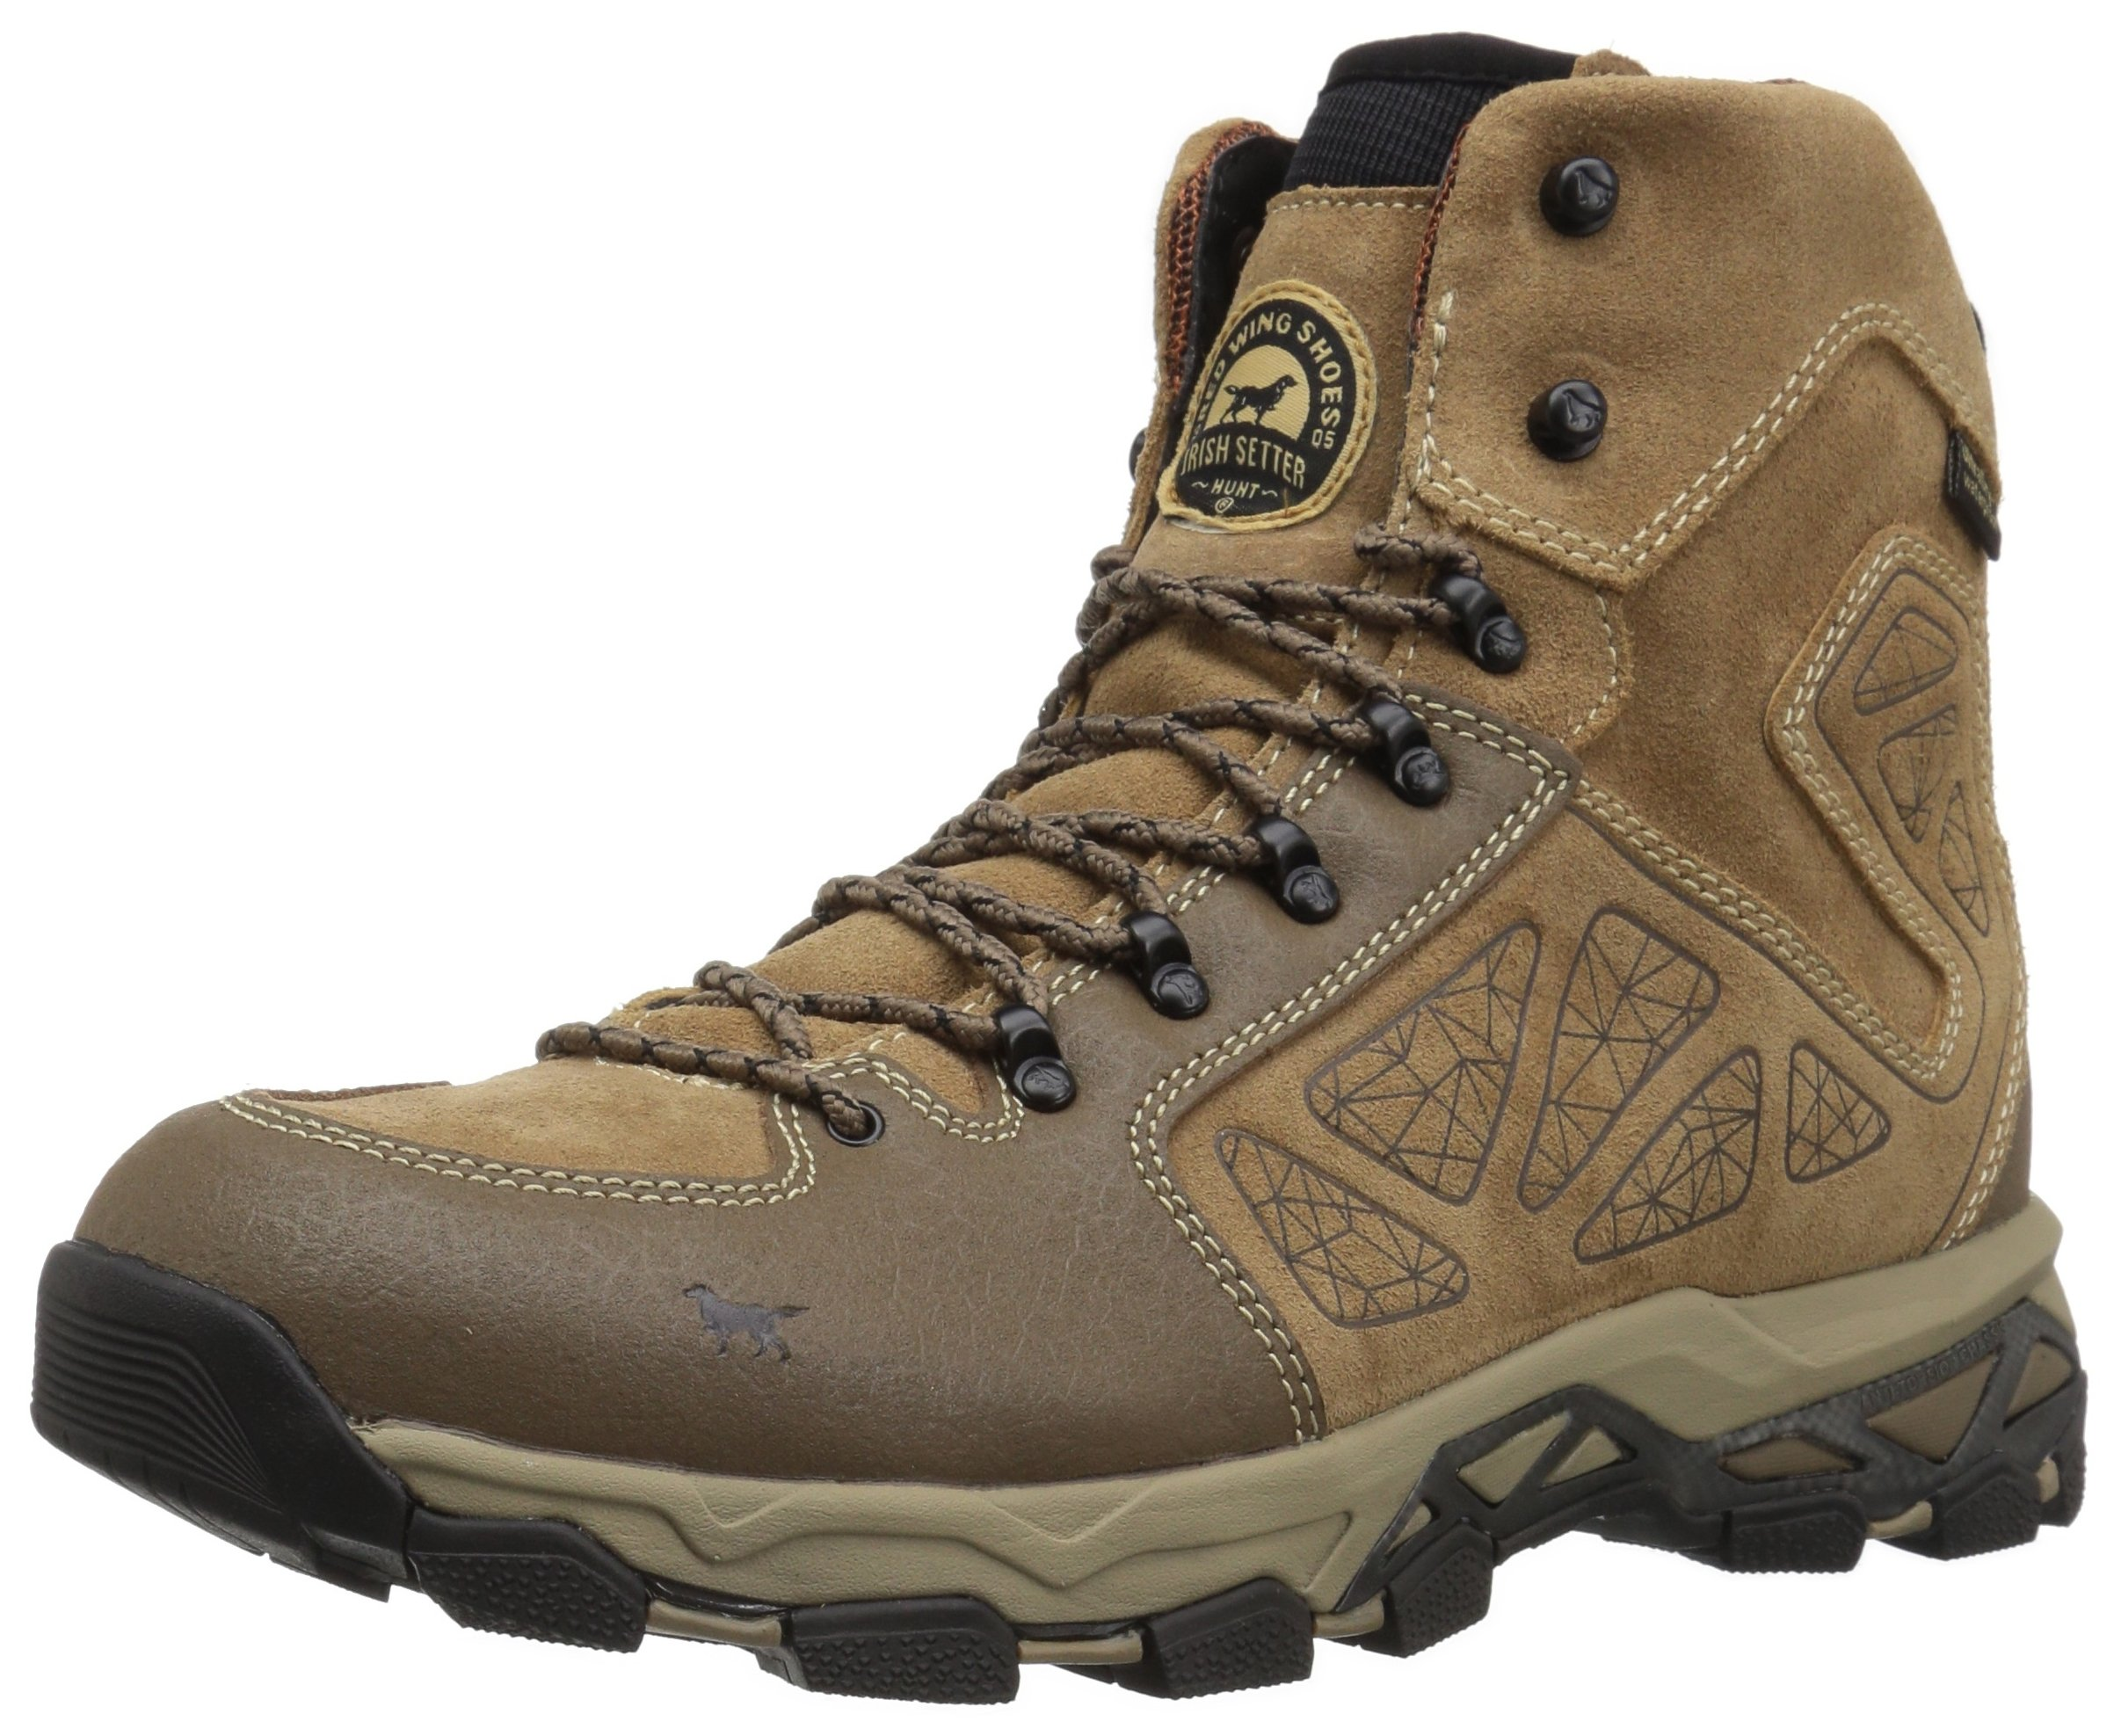 Irish Setter Men's Ravine-2884 Hunting Shoes, Tan, 11 2E US